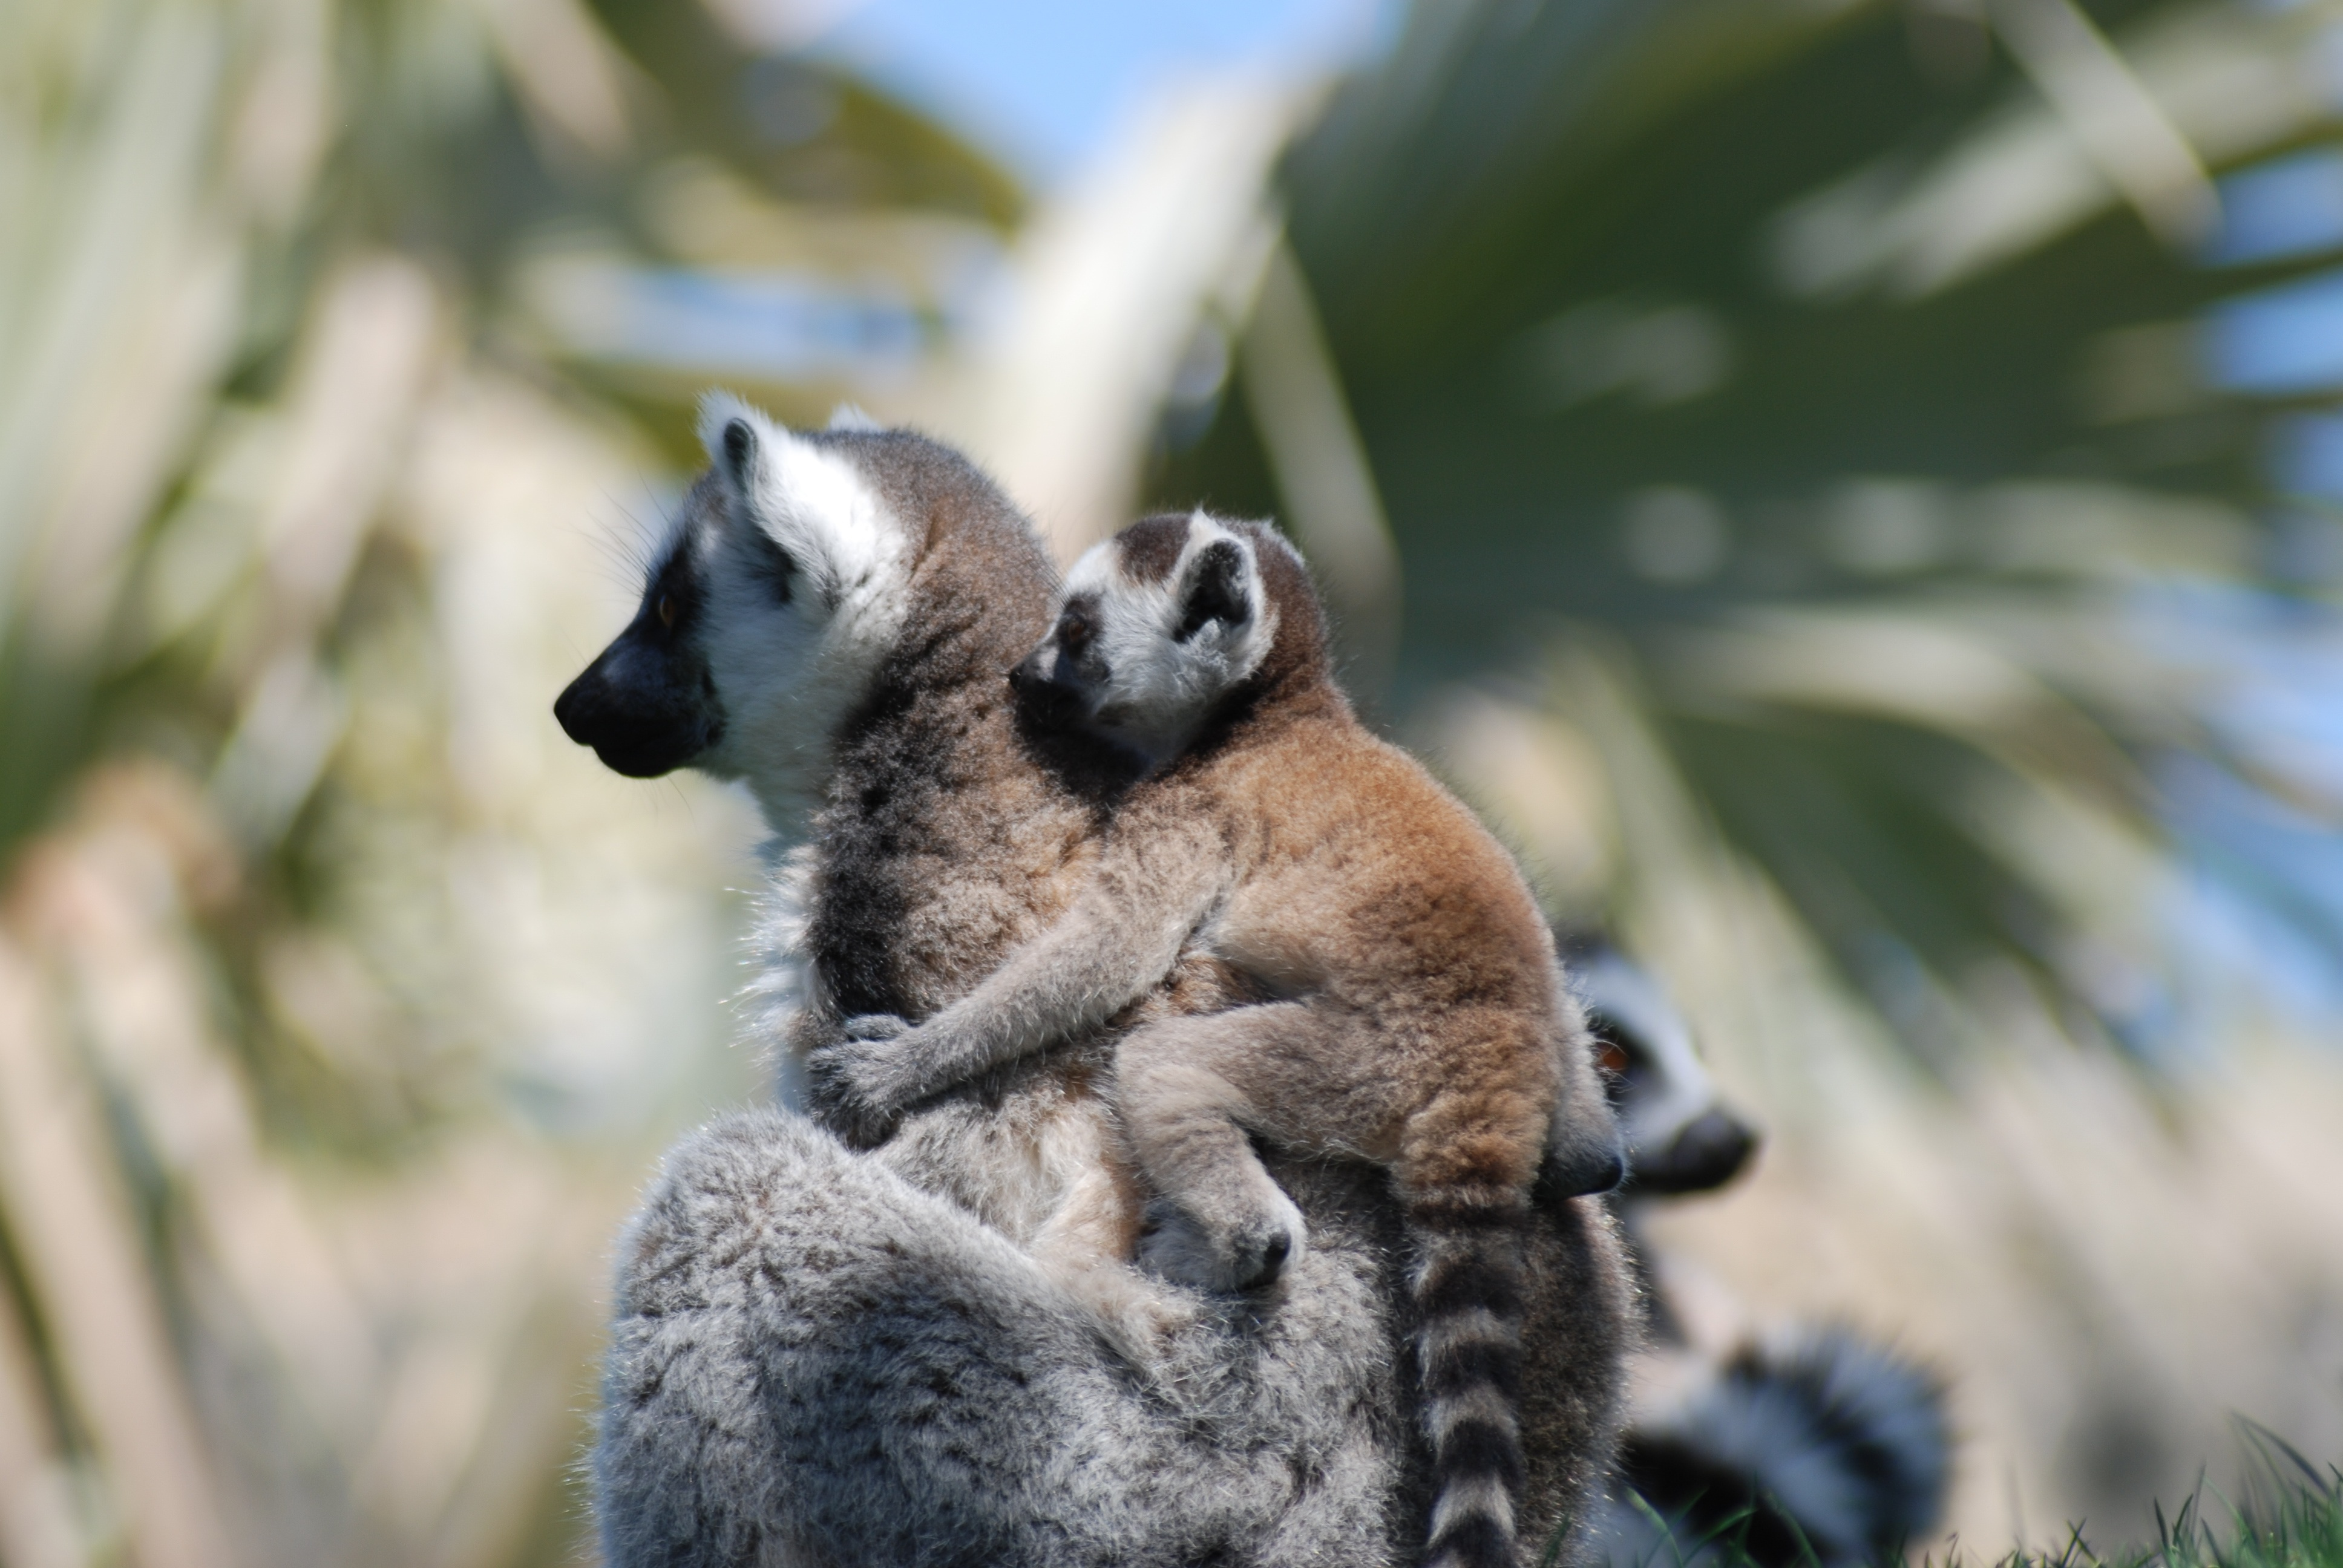 151812 download wallpaper Animals, Lemur, Young, Joey, Couple, Pair, Care screensavers and pictures for free